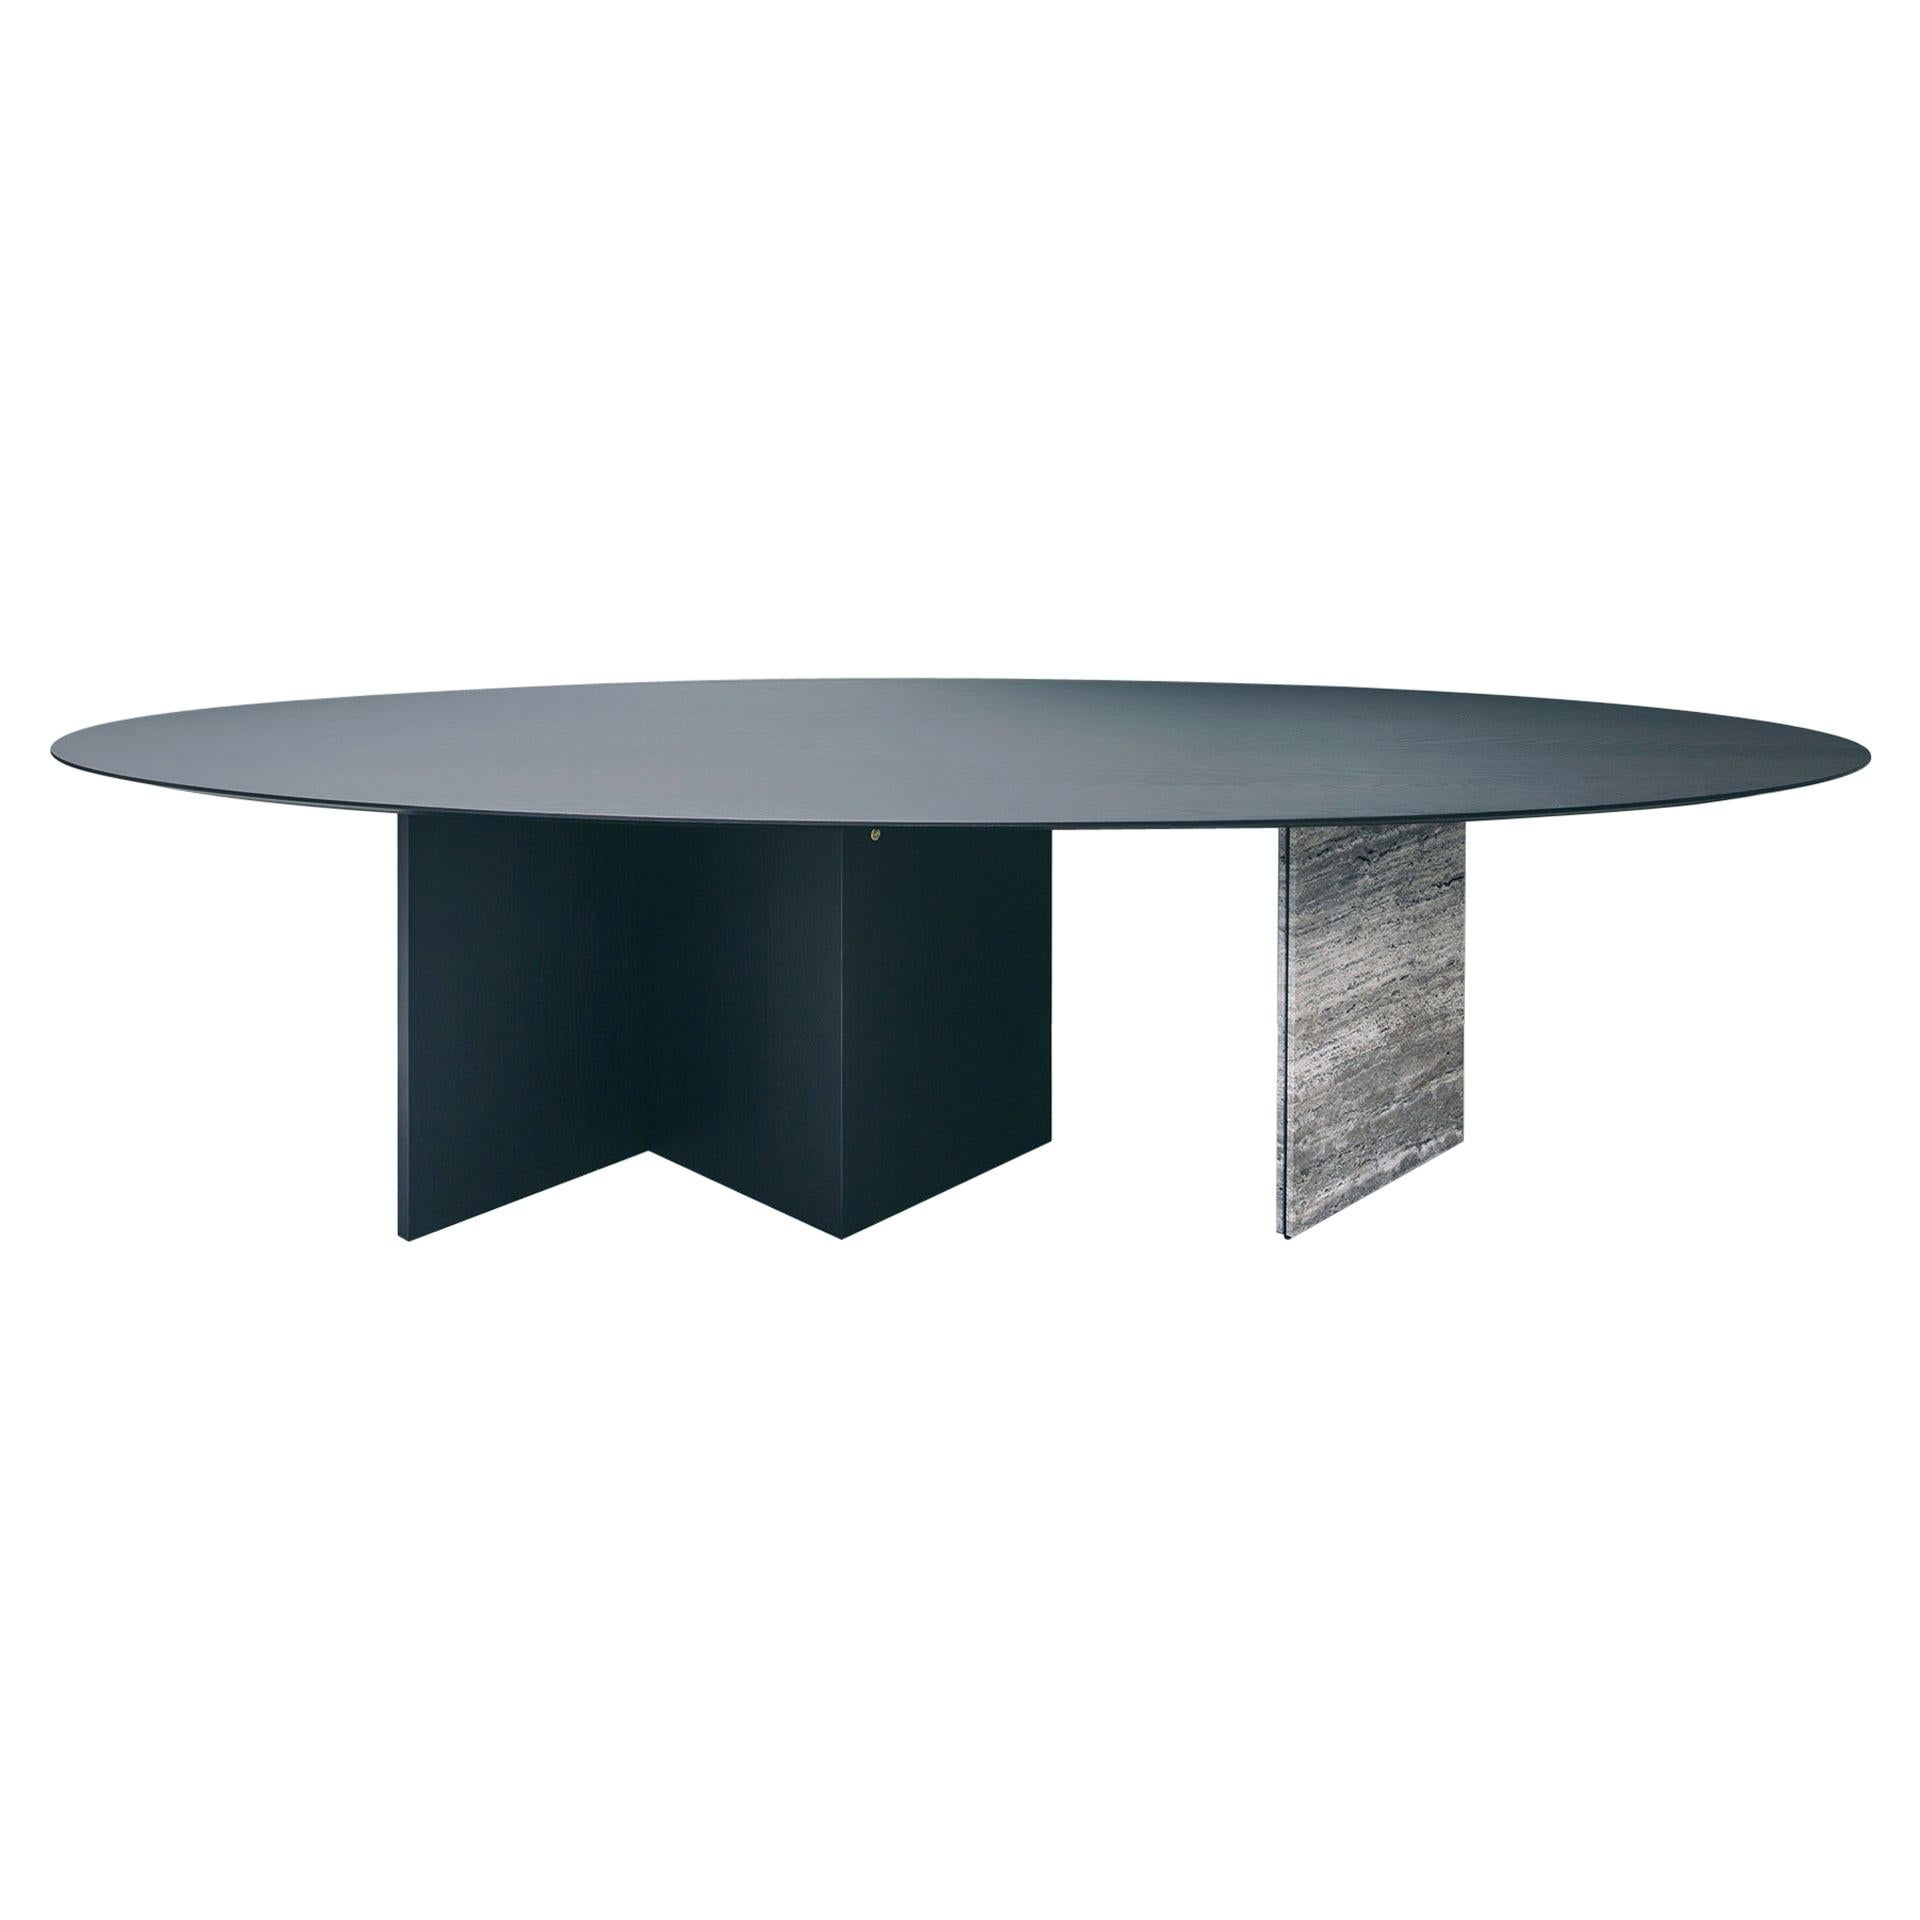 contemporary black ash wood dining table with travertin, ellipse 01.1 by barh